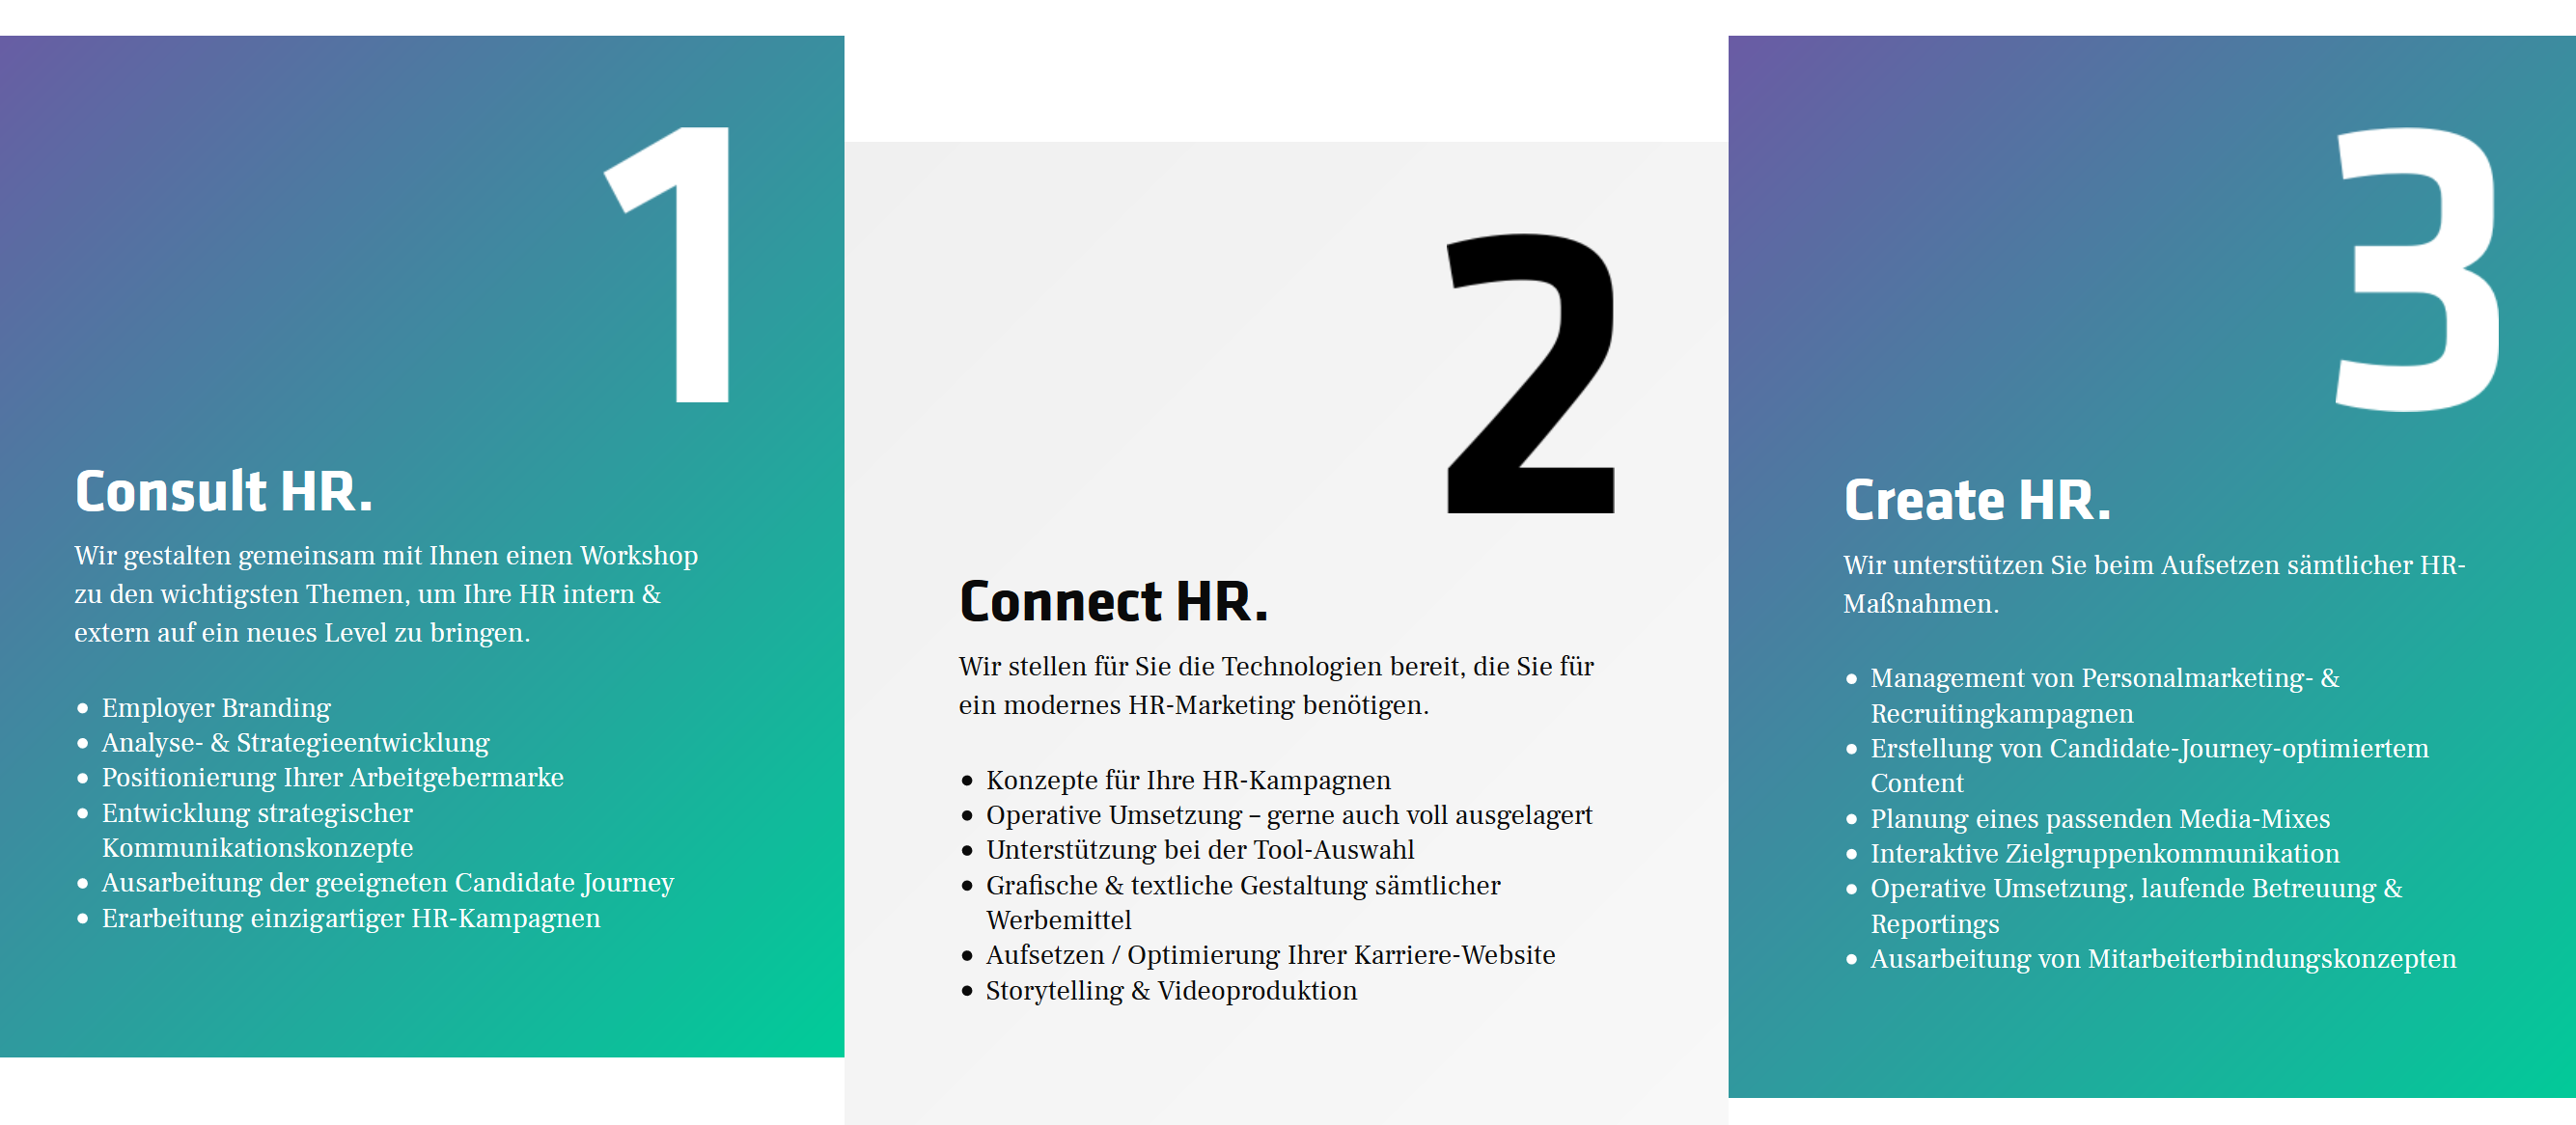 HR-Marketing - 3 Steps to Success